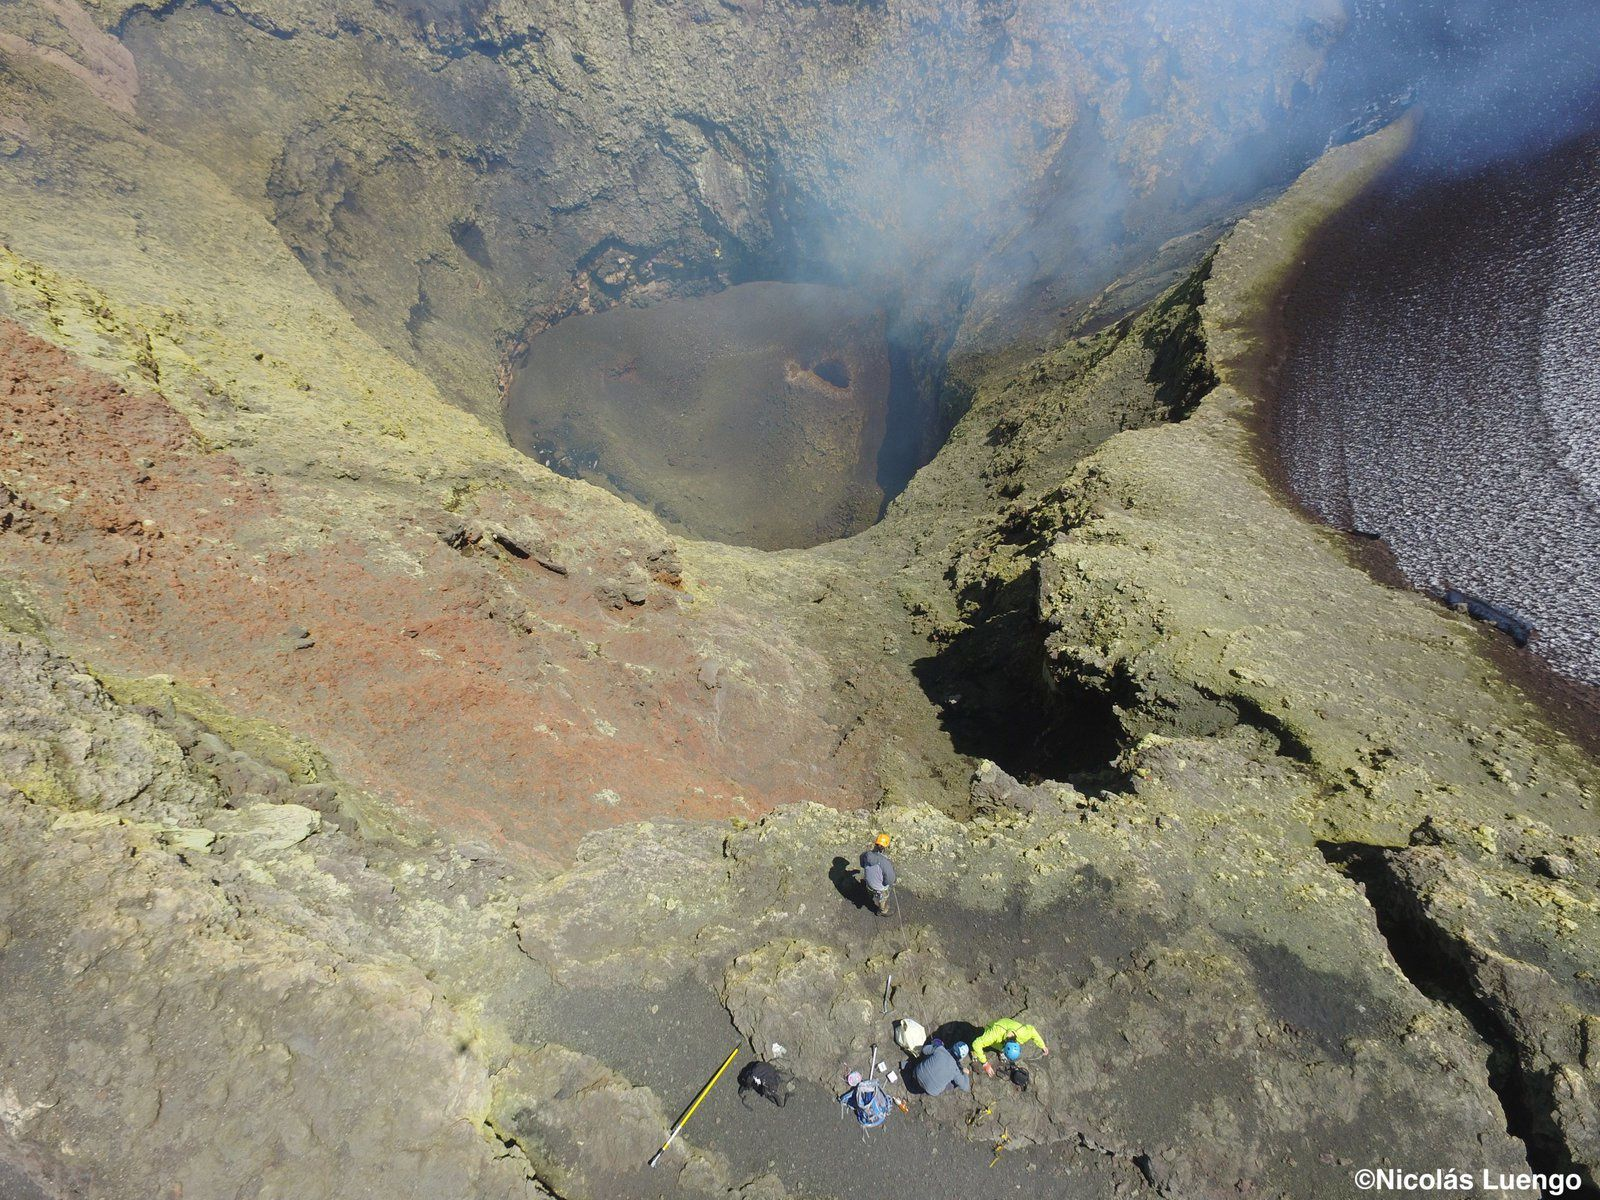 Villarica -the interior of the crater of Villarrica volcano, where a set of infrasonic sensors have been arranged - photo Volcanologia Chile 18.02.2019